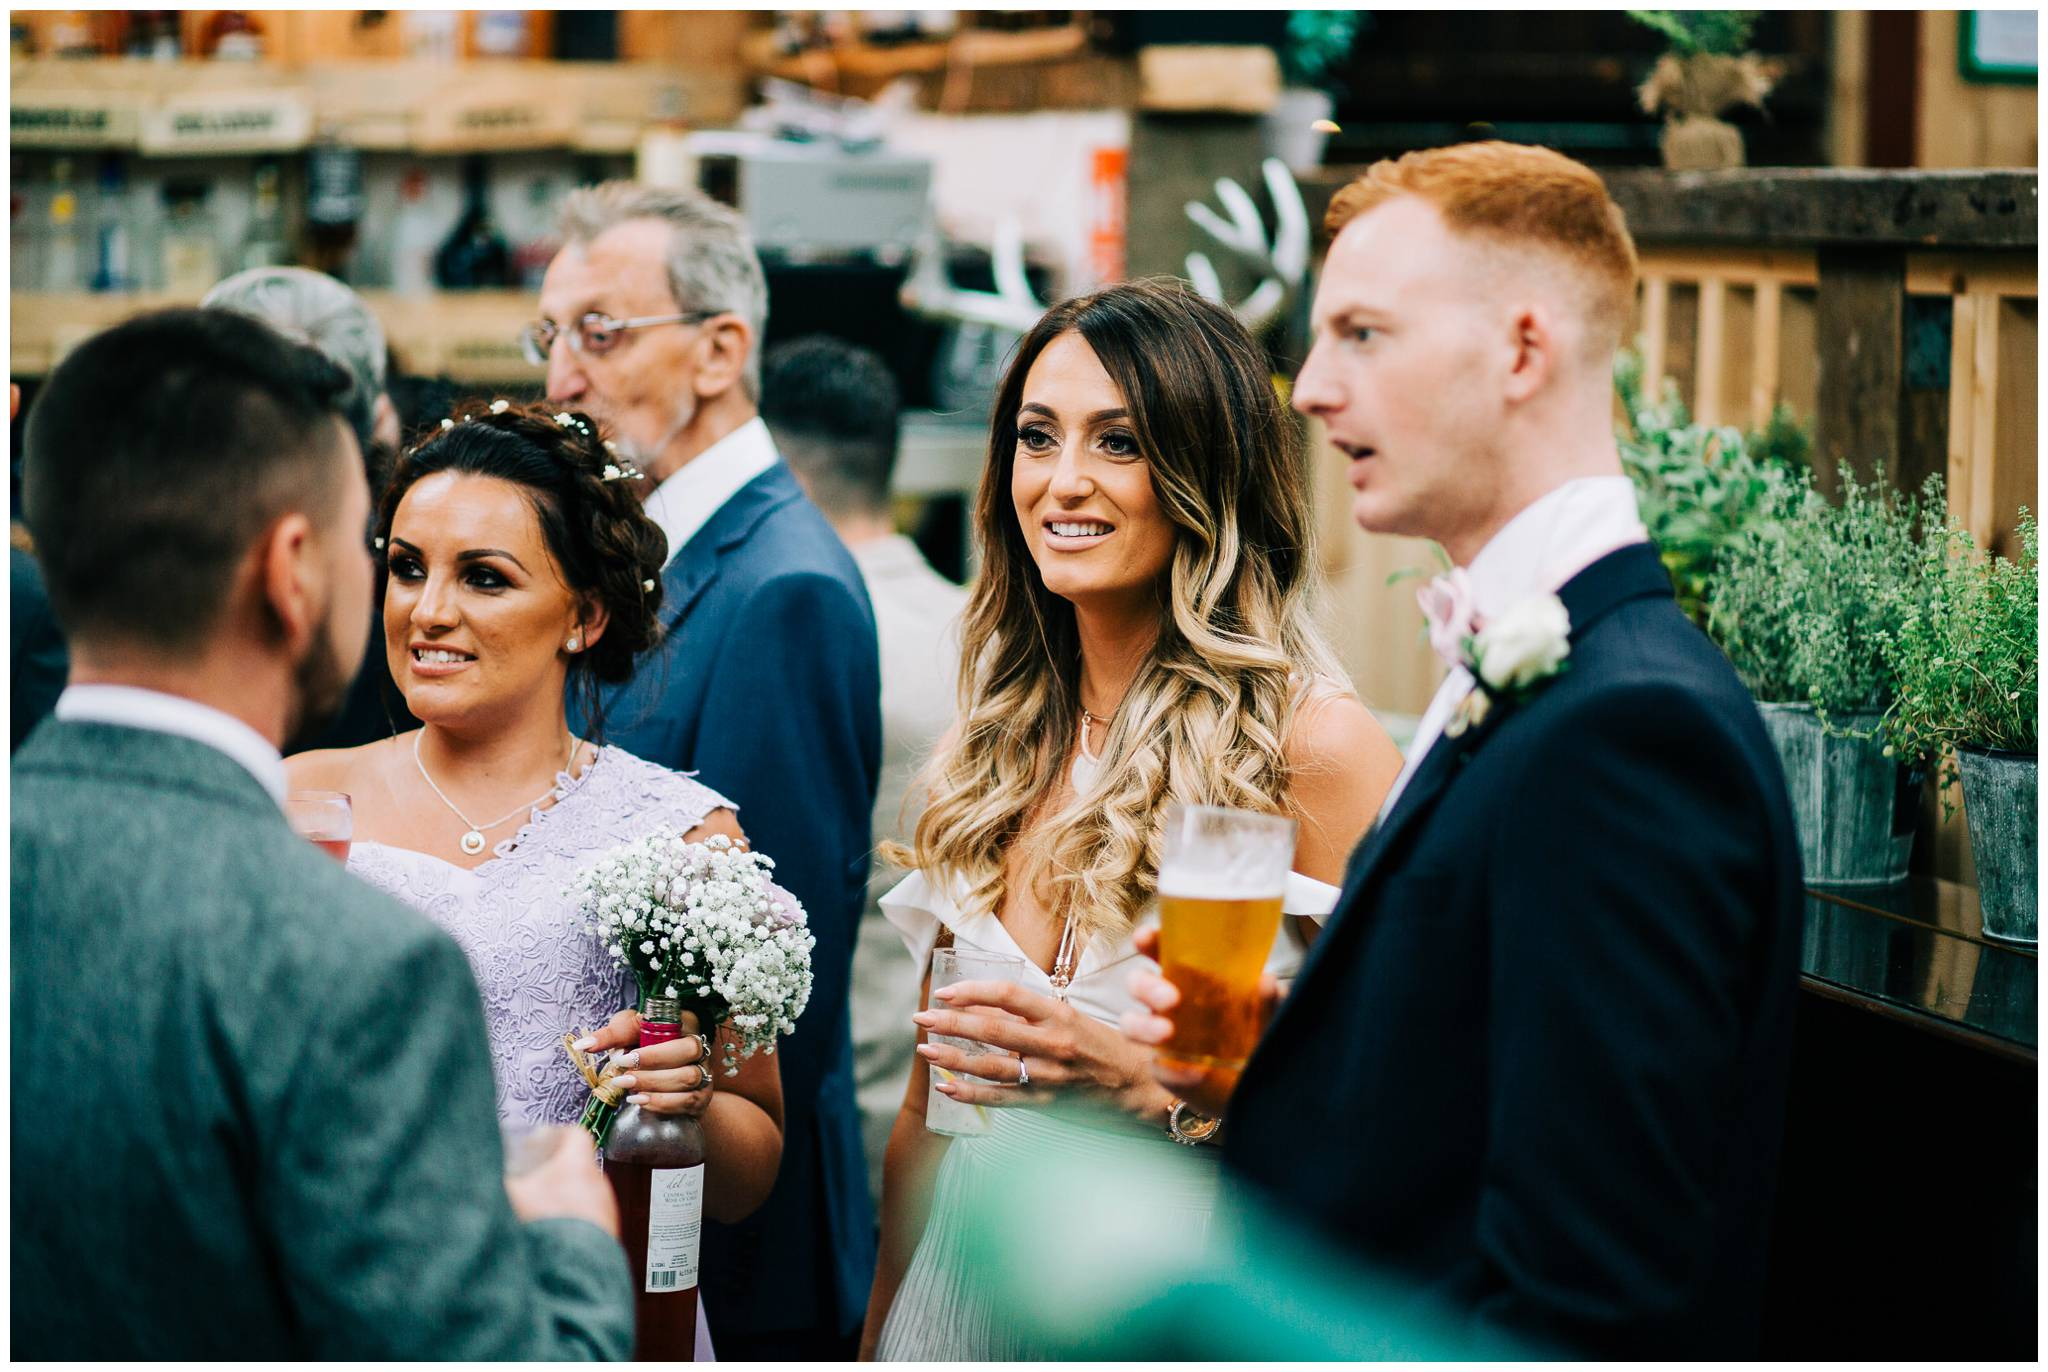 Festival wedding at Wellbeing Farm  - Bolton Wedding Photographer_0036.jpg